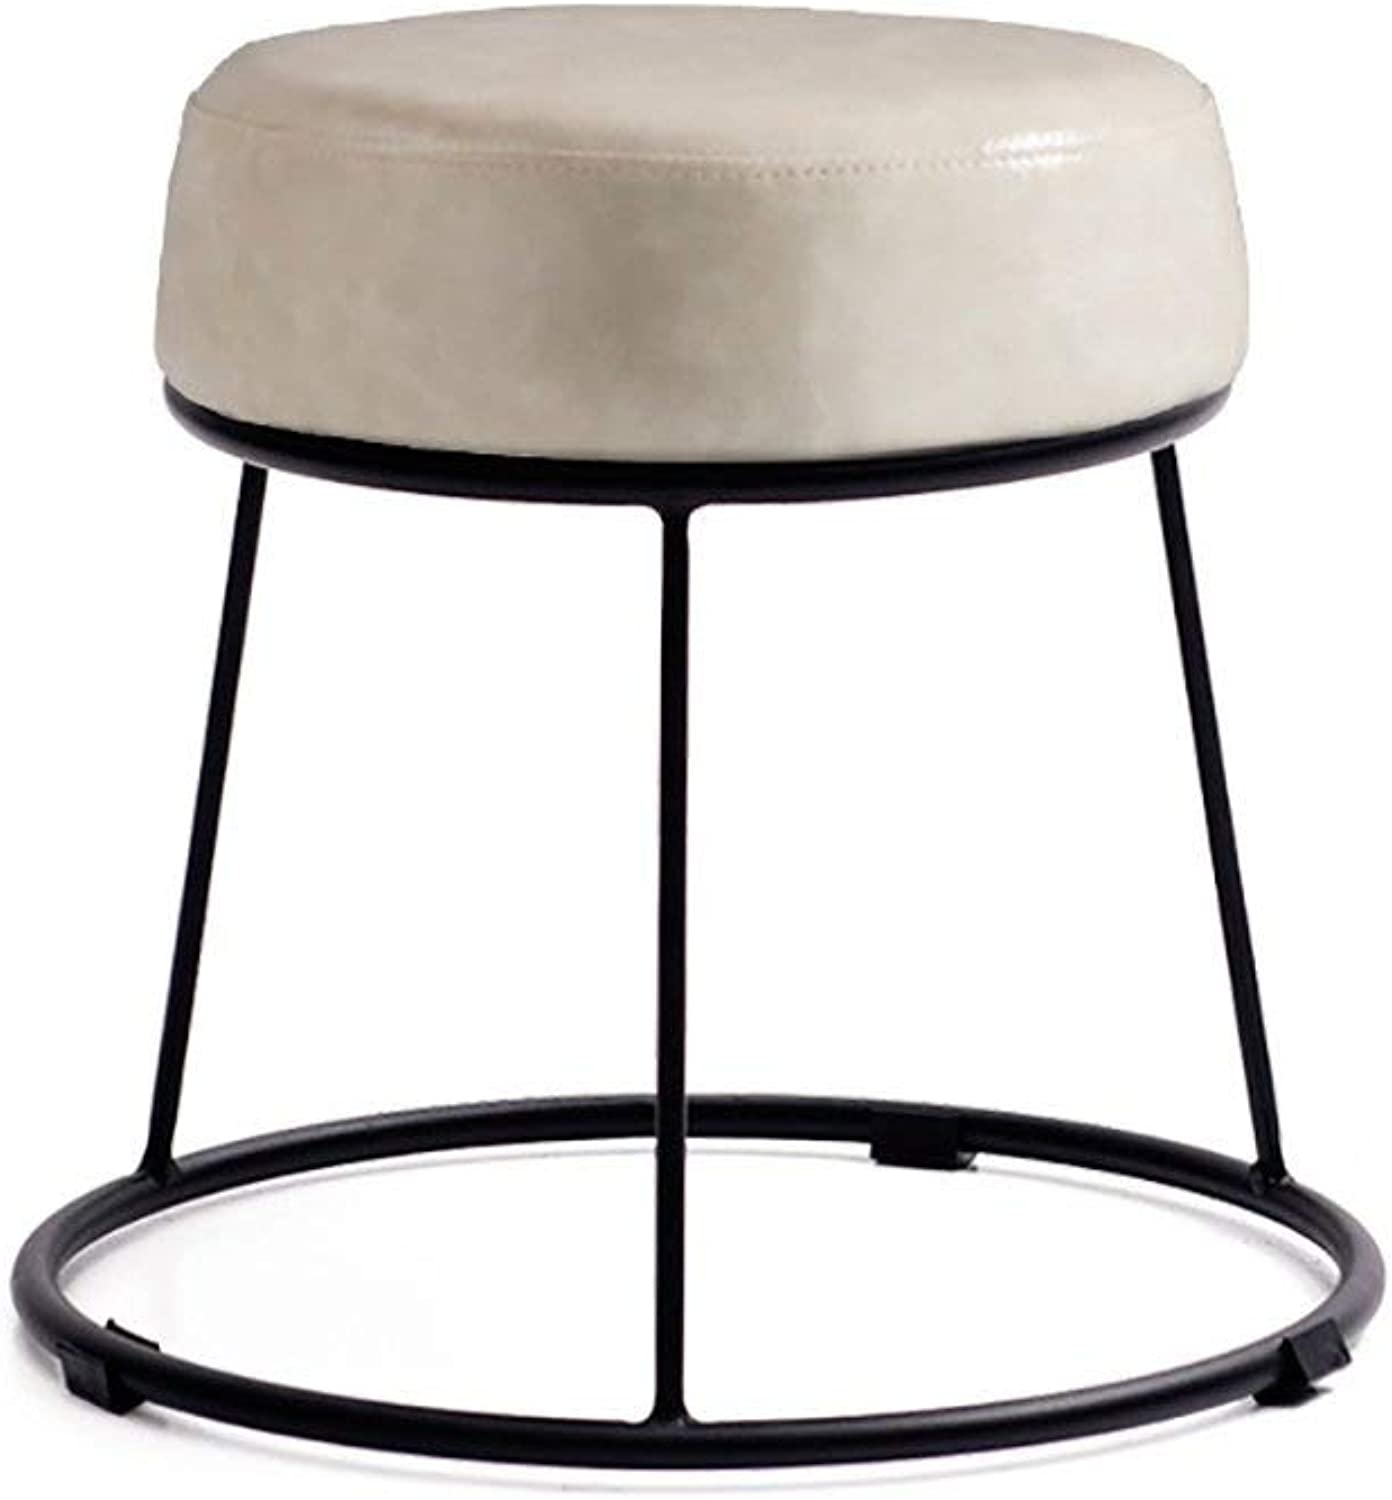 European Chair Soft Stools Padded Stool Home Stool Vanity Stool Small Stool Lazy Bench Footstool Beautiful and Practical GMING (color    3)